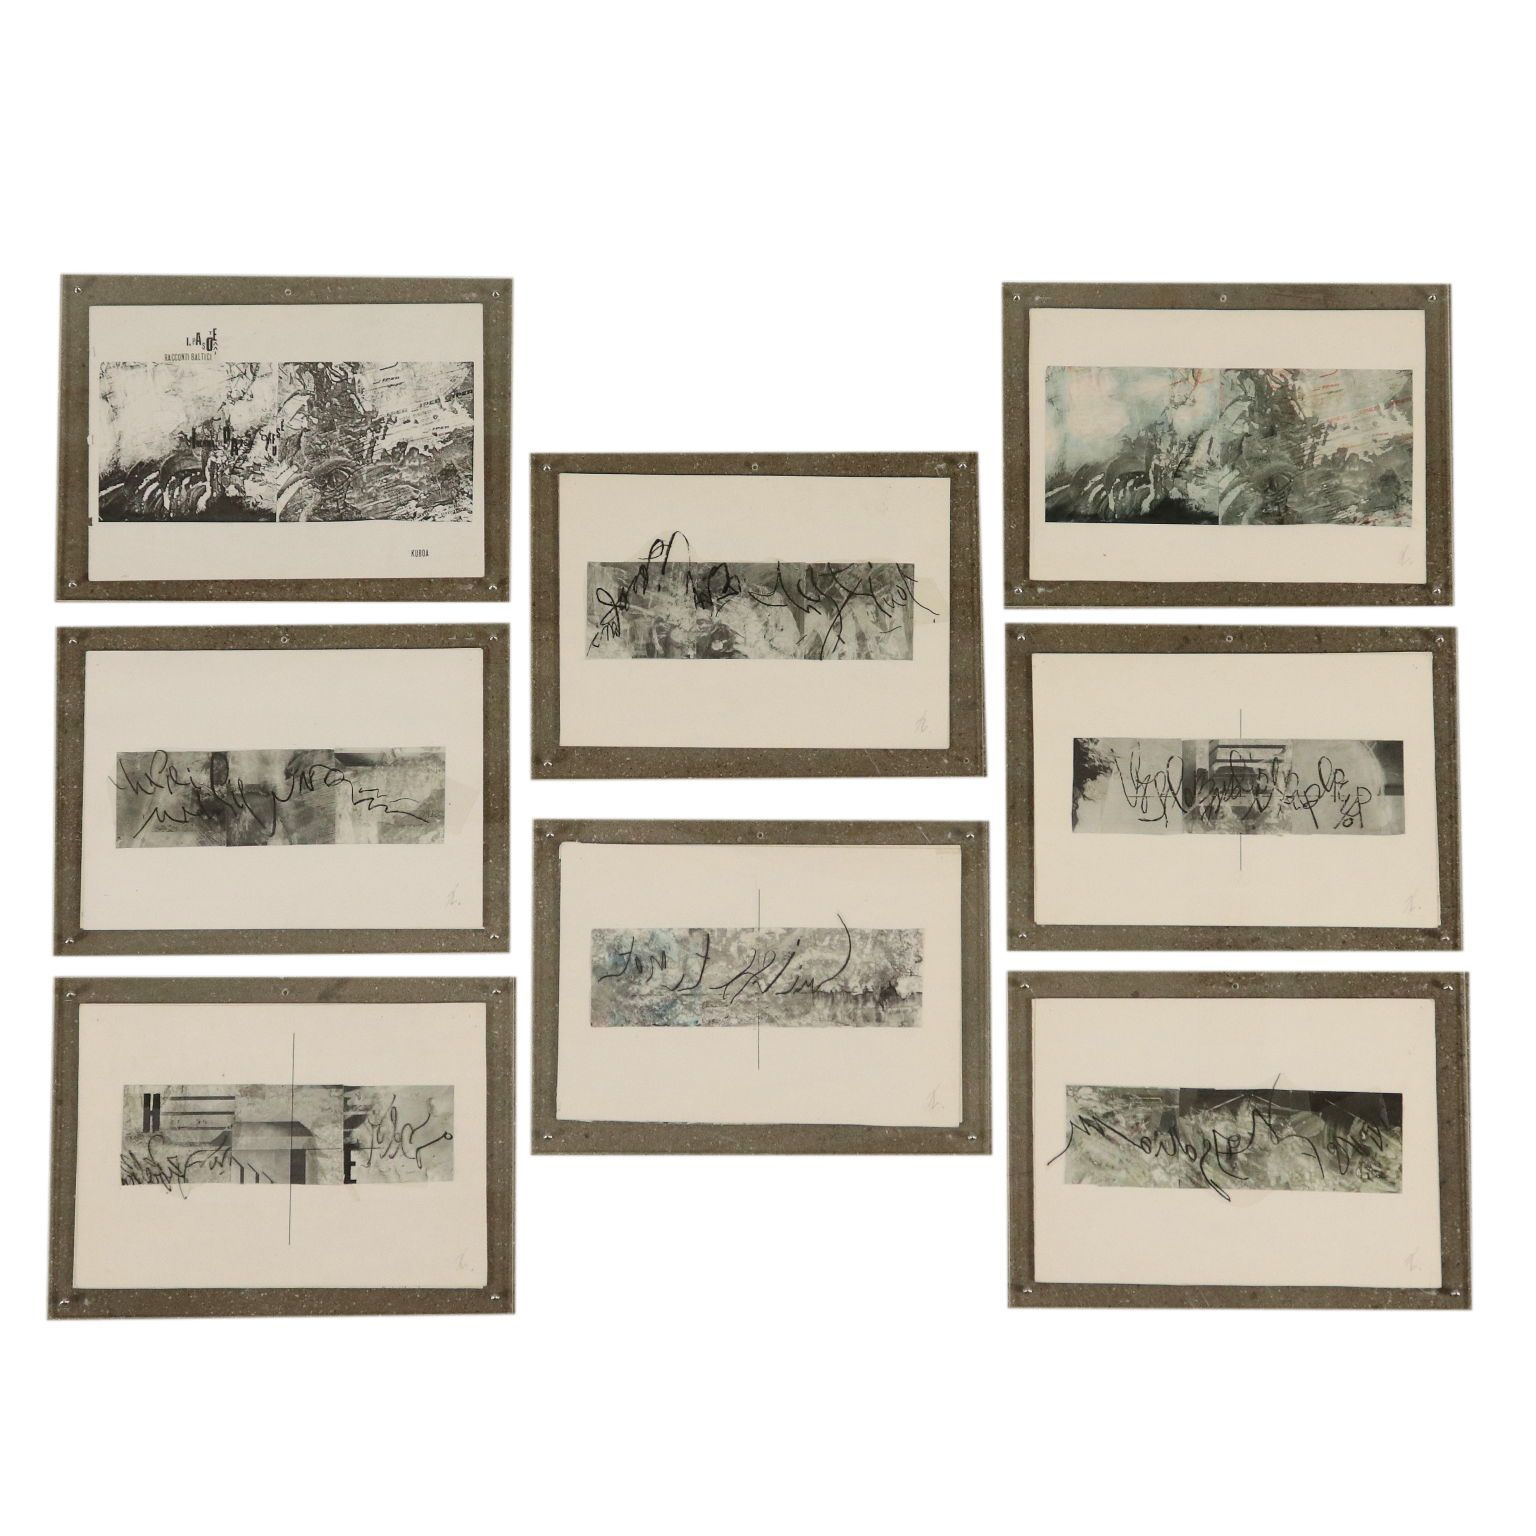 Set of Eight Collages Baltic Stories Contemporary Art #baltic